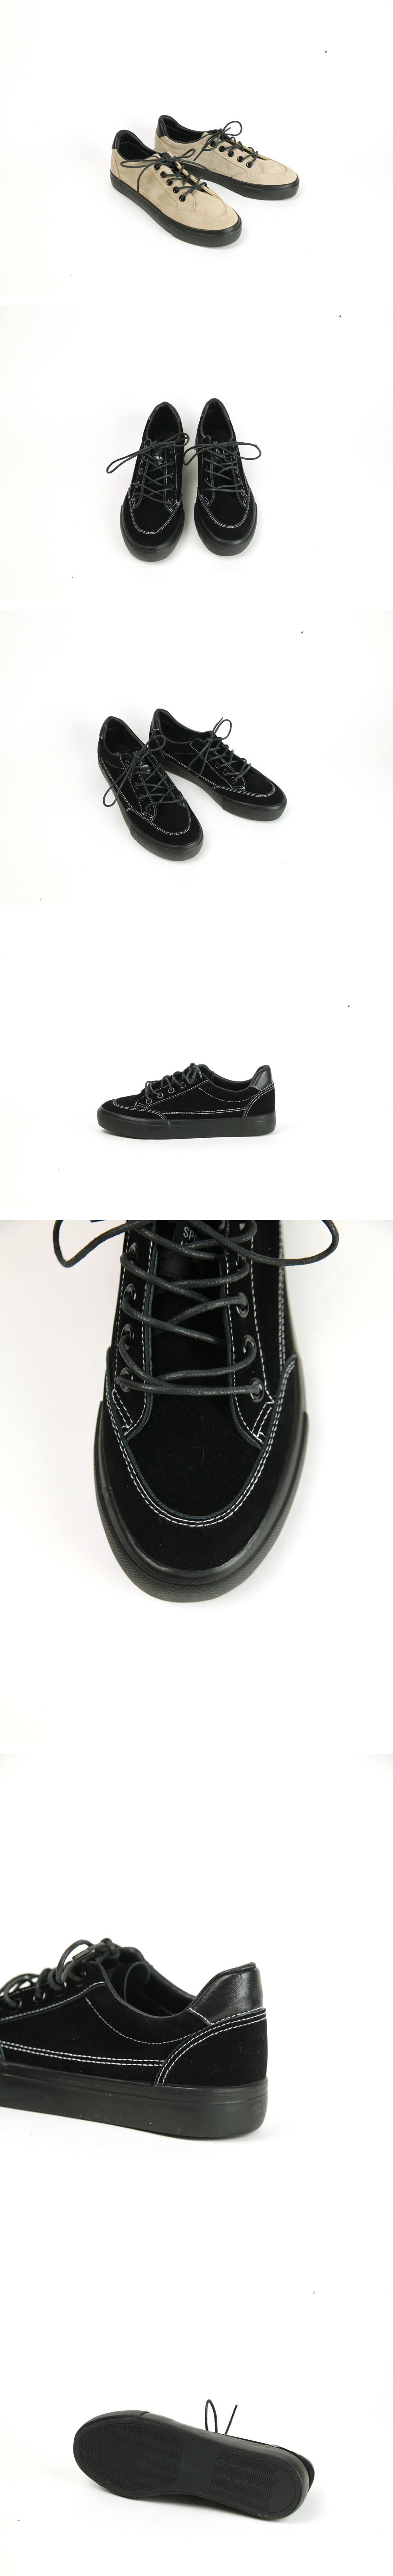 Suede stitched shoes